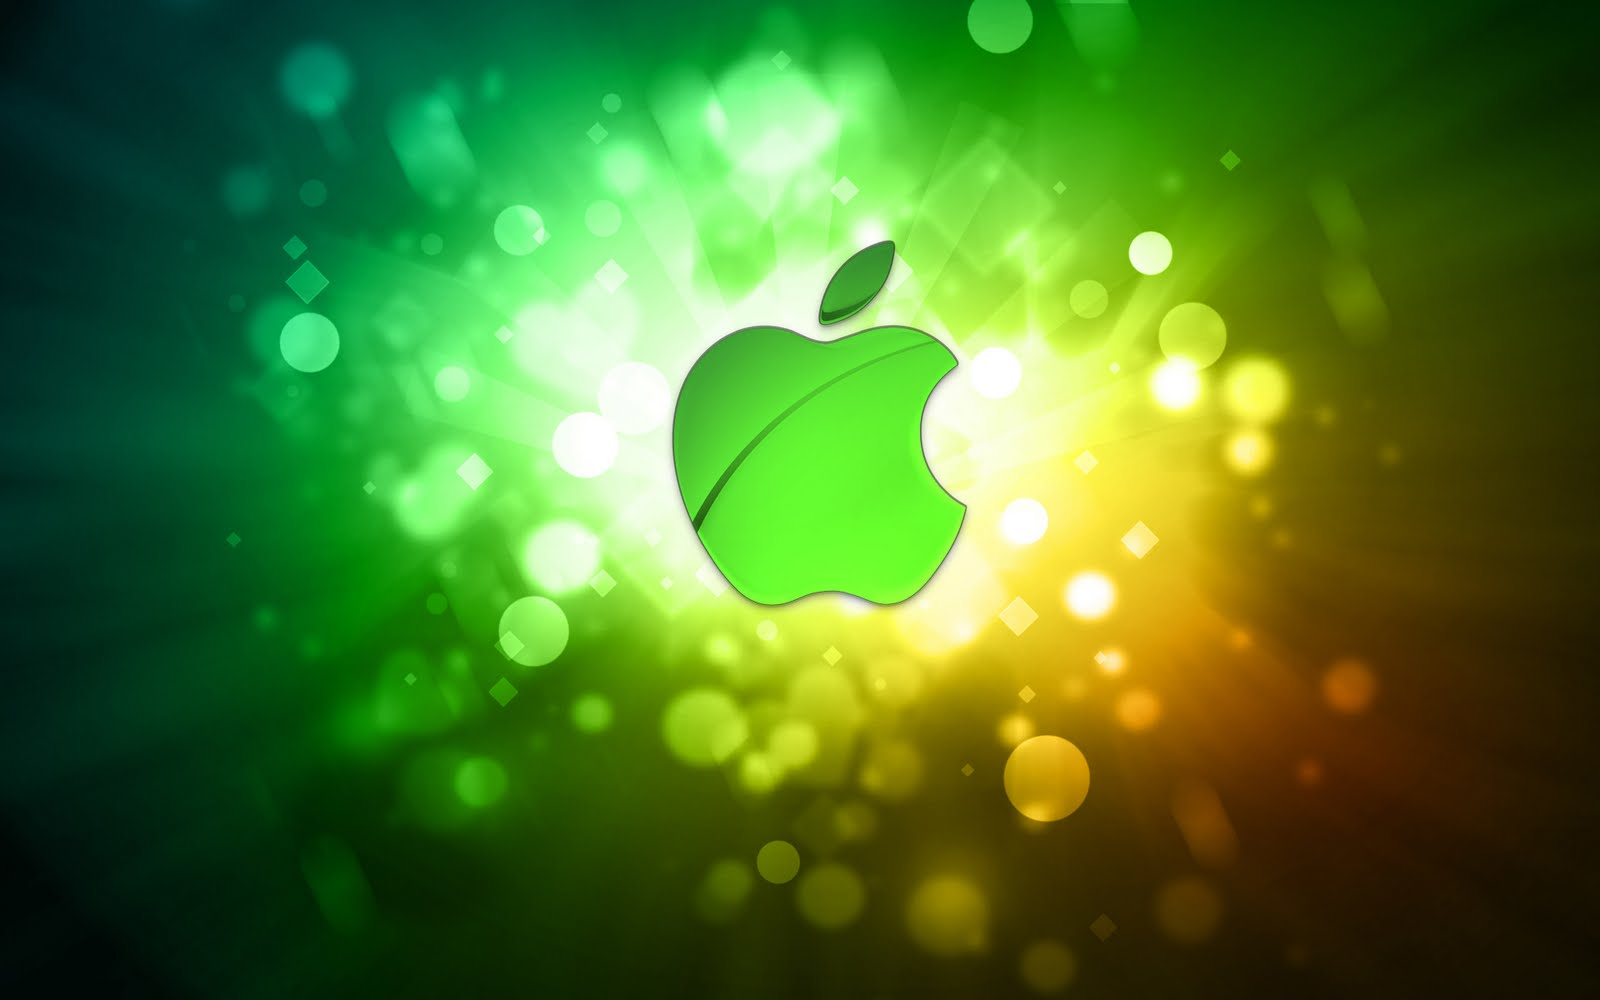 http://3.bp.blogspot.com/_Ym3du2sG3R4/TRB6mxh5JAI/AAAAAAAADE0/wC2P1jpzlc0/s1600/abstract-apple-wallpaper.jpg